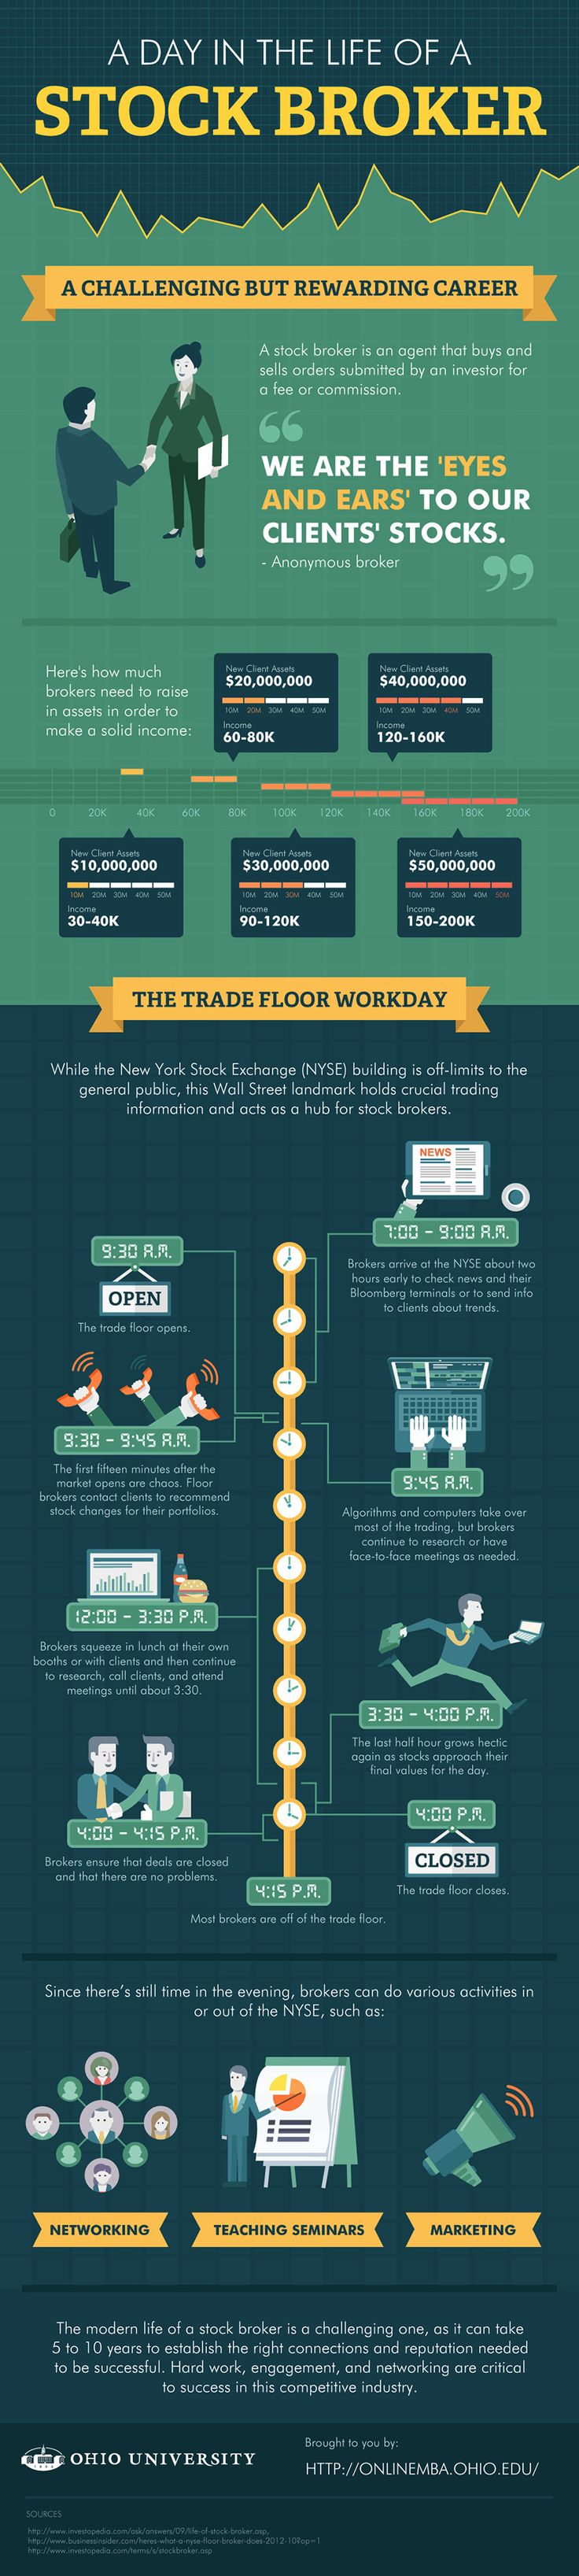 A Day In The Life Of A Stock Broker #infographic